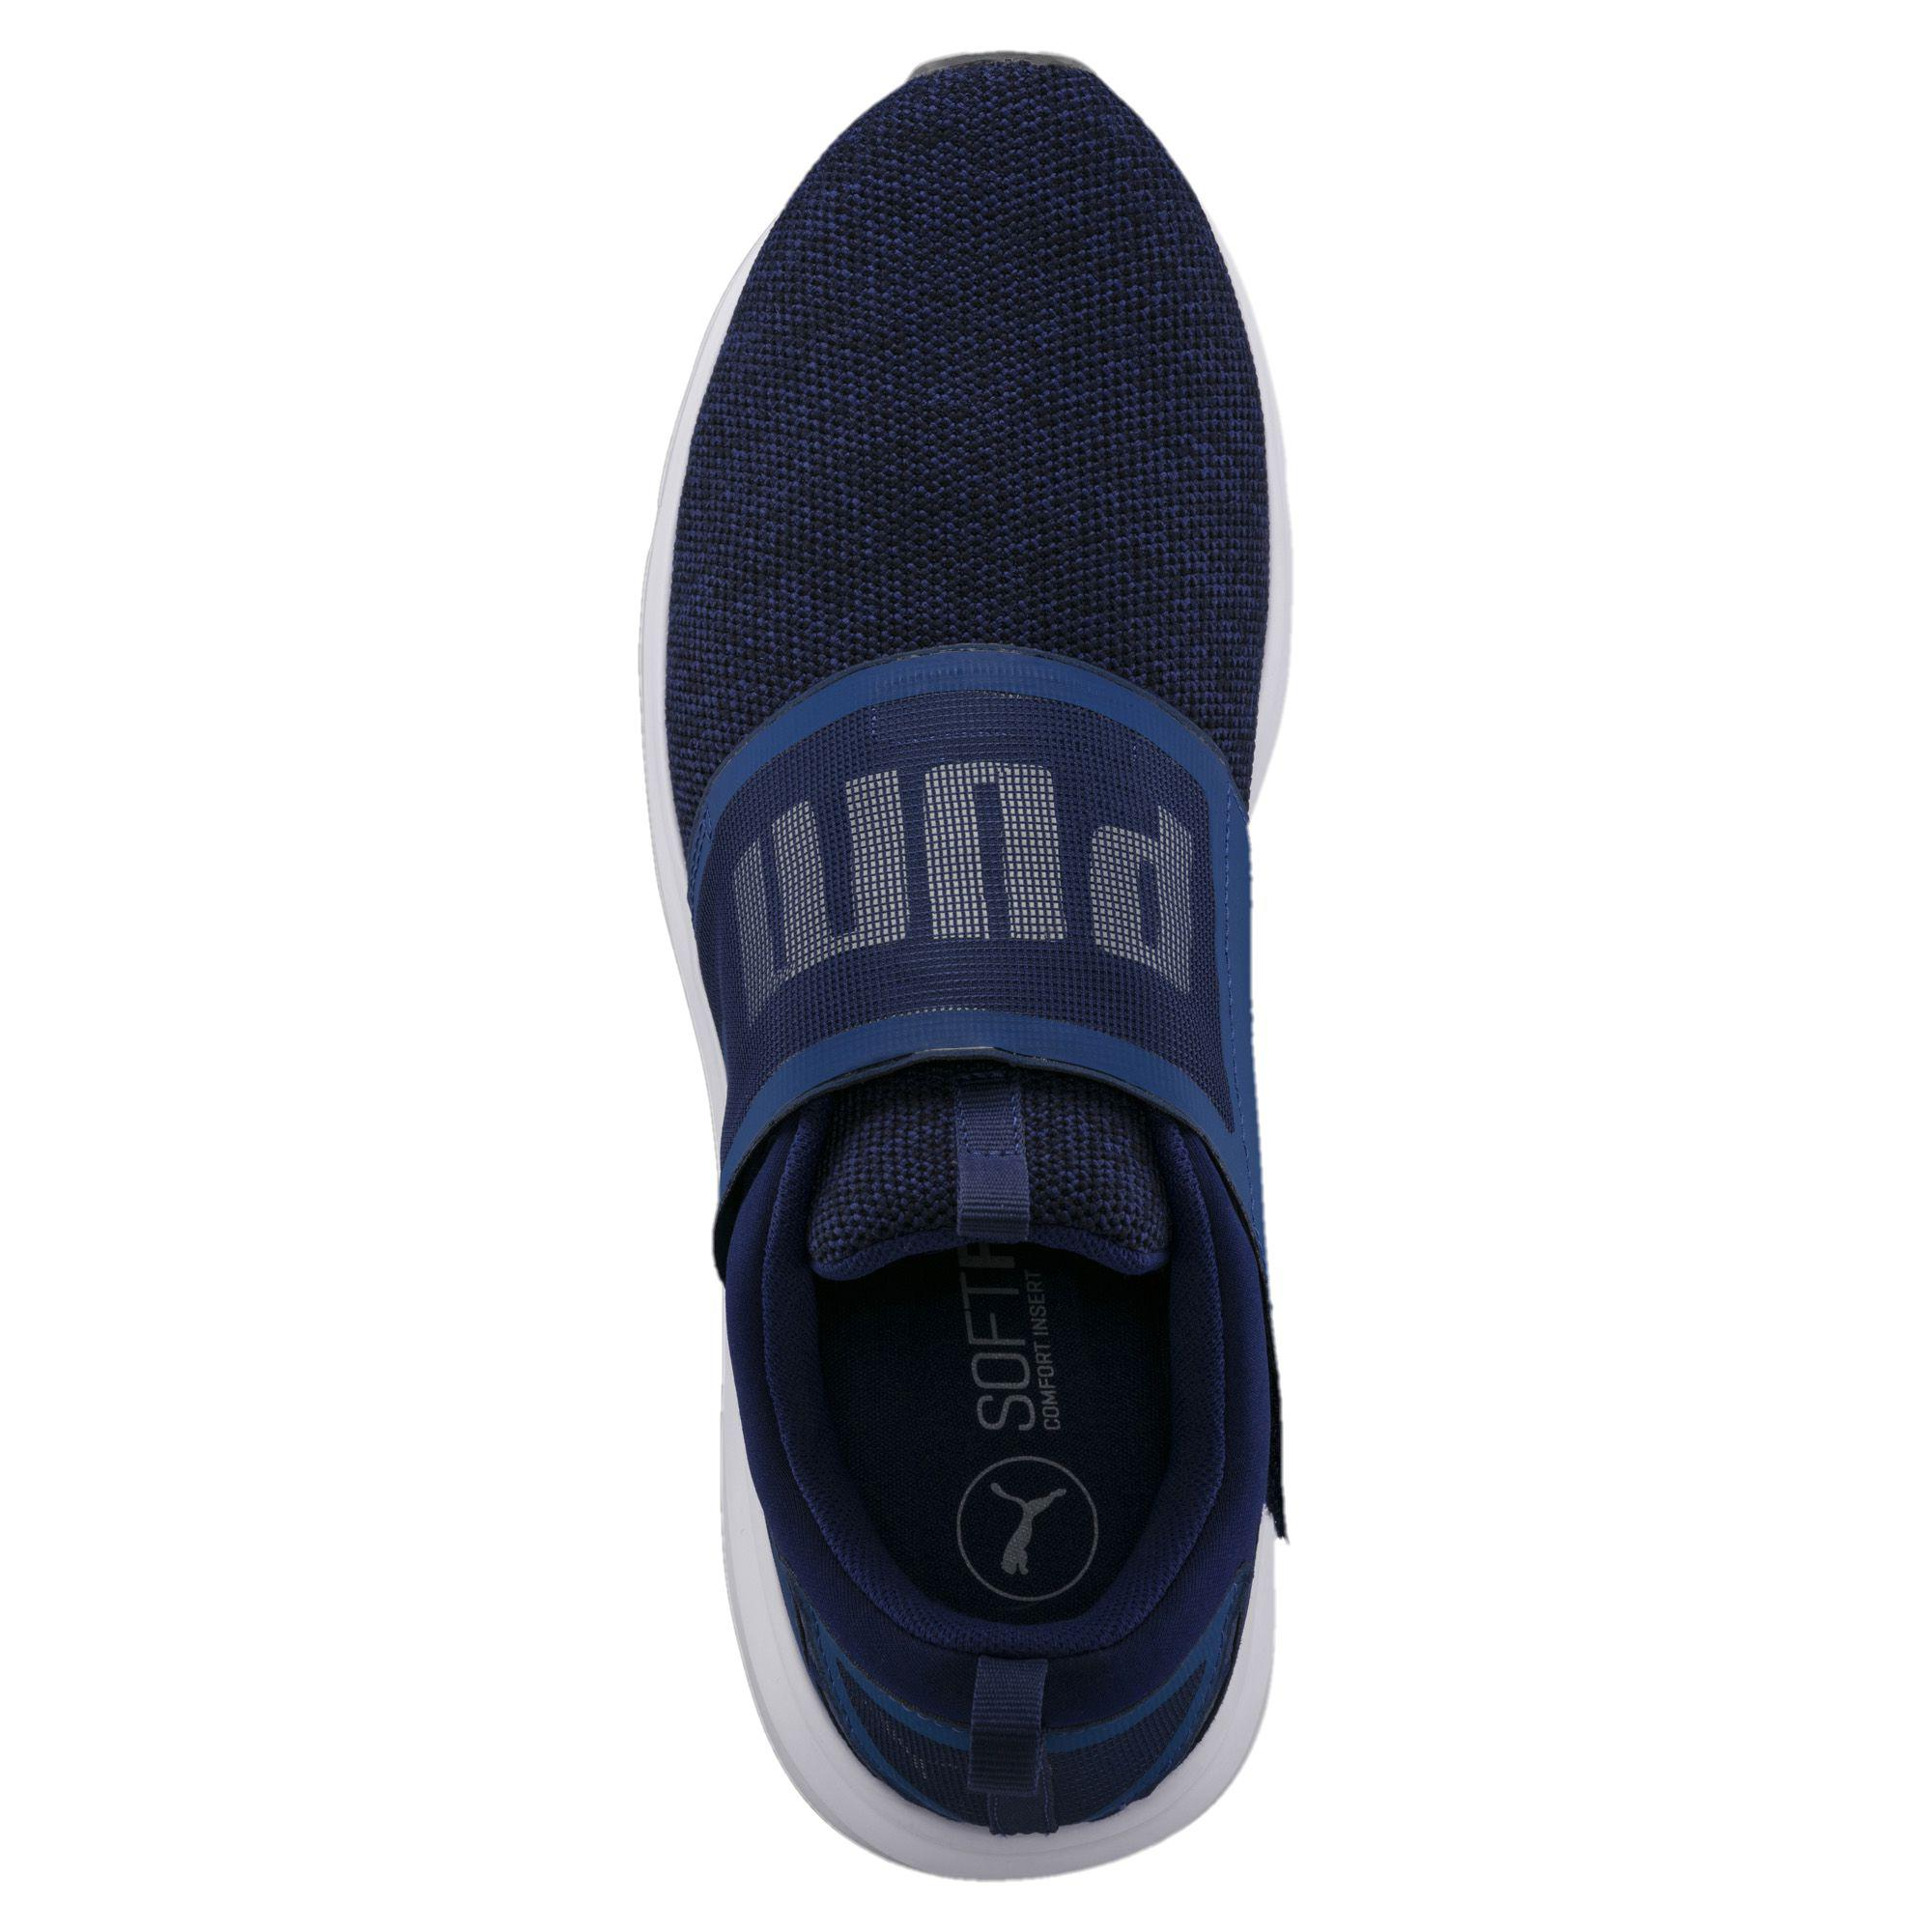 3cc08e96393a97 Lyst - Puma Enzo Strap Knit Men s Running Shoes in Blue for Men